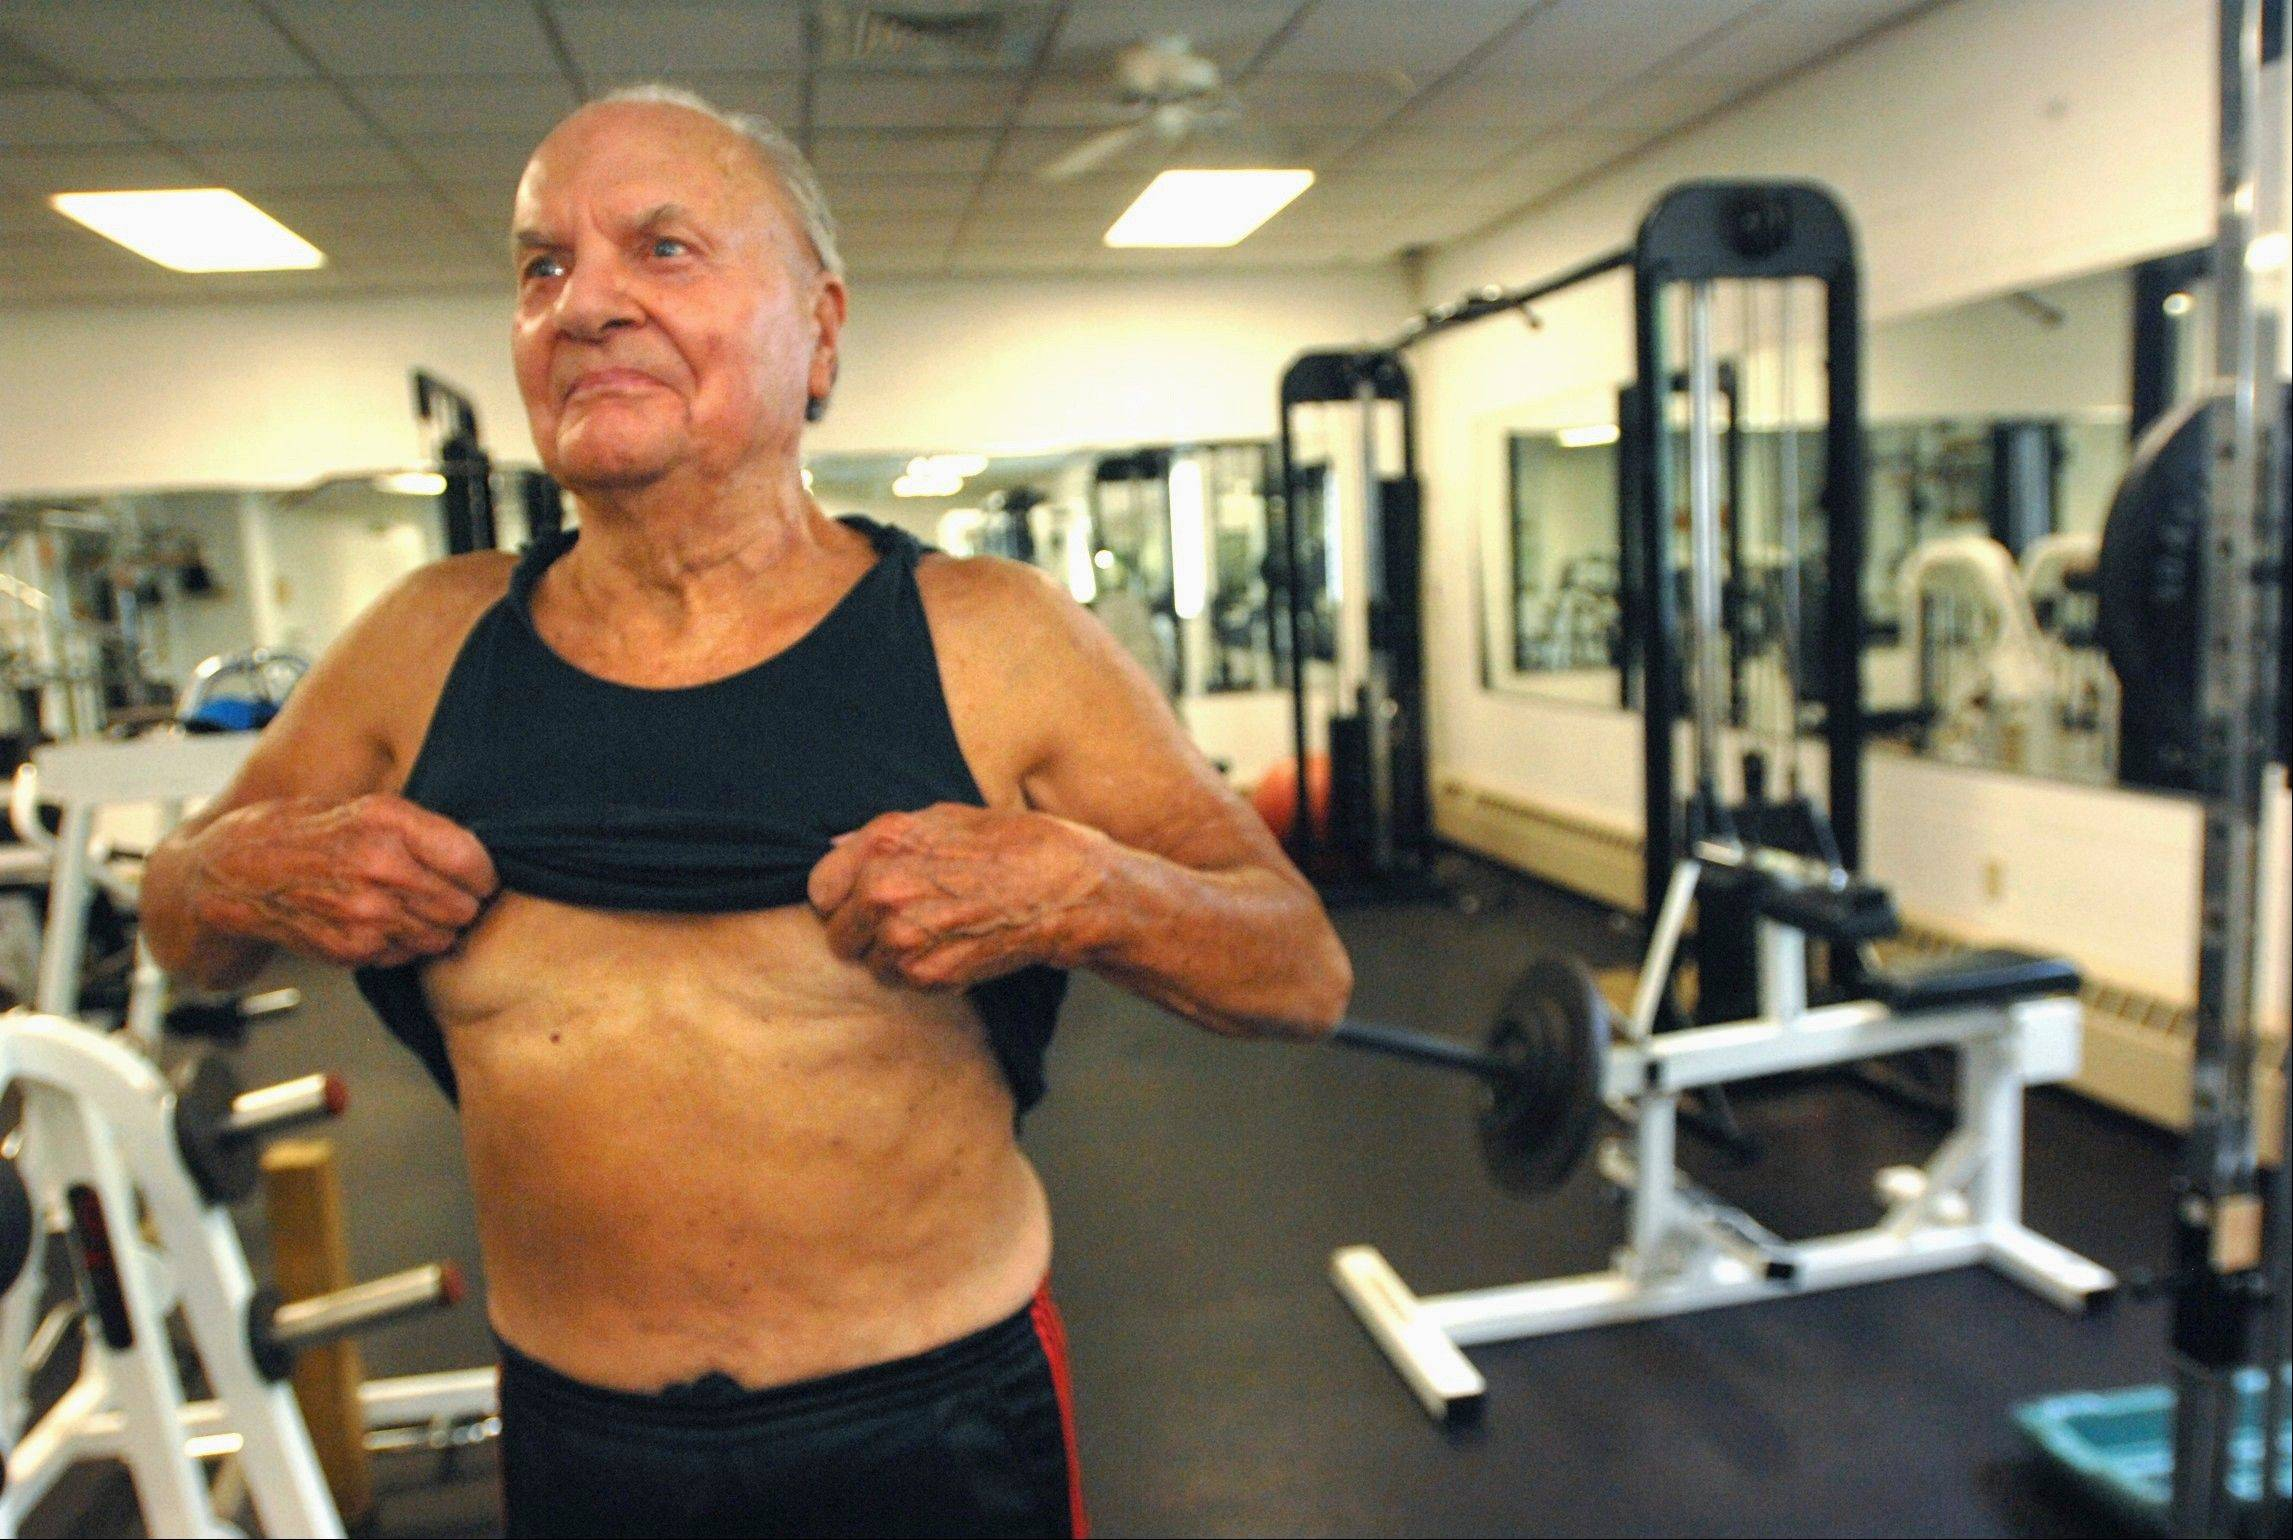 Retired farmer Glenn Bradd, 87, of Bloomington, Ill., shows off his abdominals after working out at the YMCA in Bloomington.